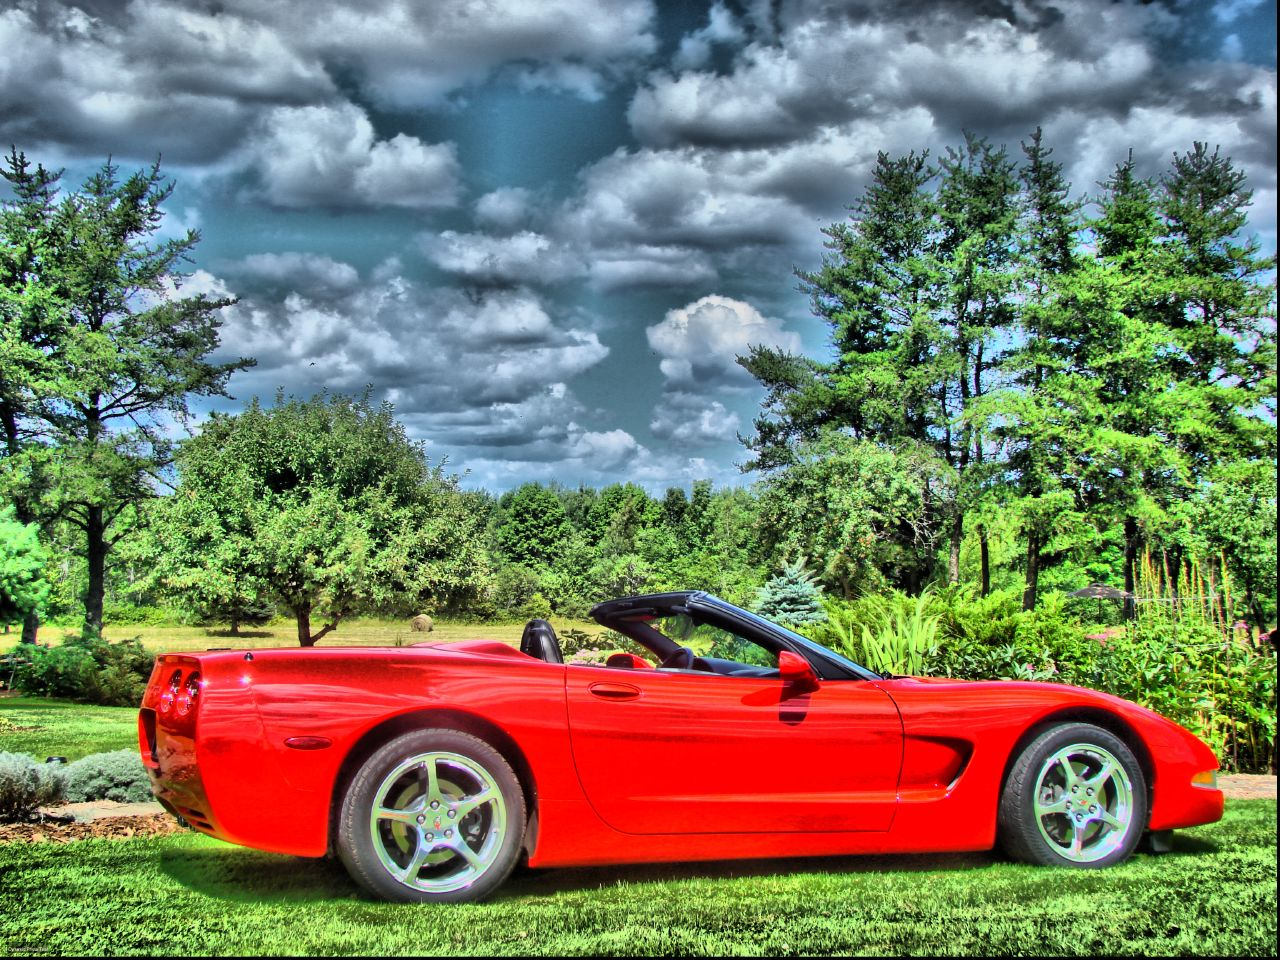 Kelly's 02 Convertible Corvette in HDR. go back